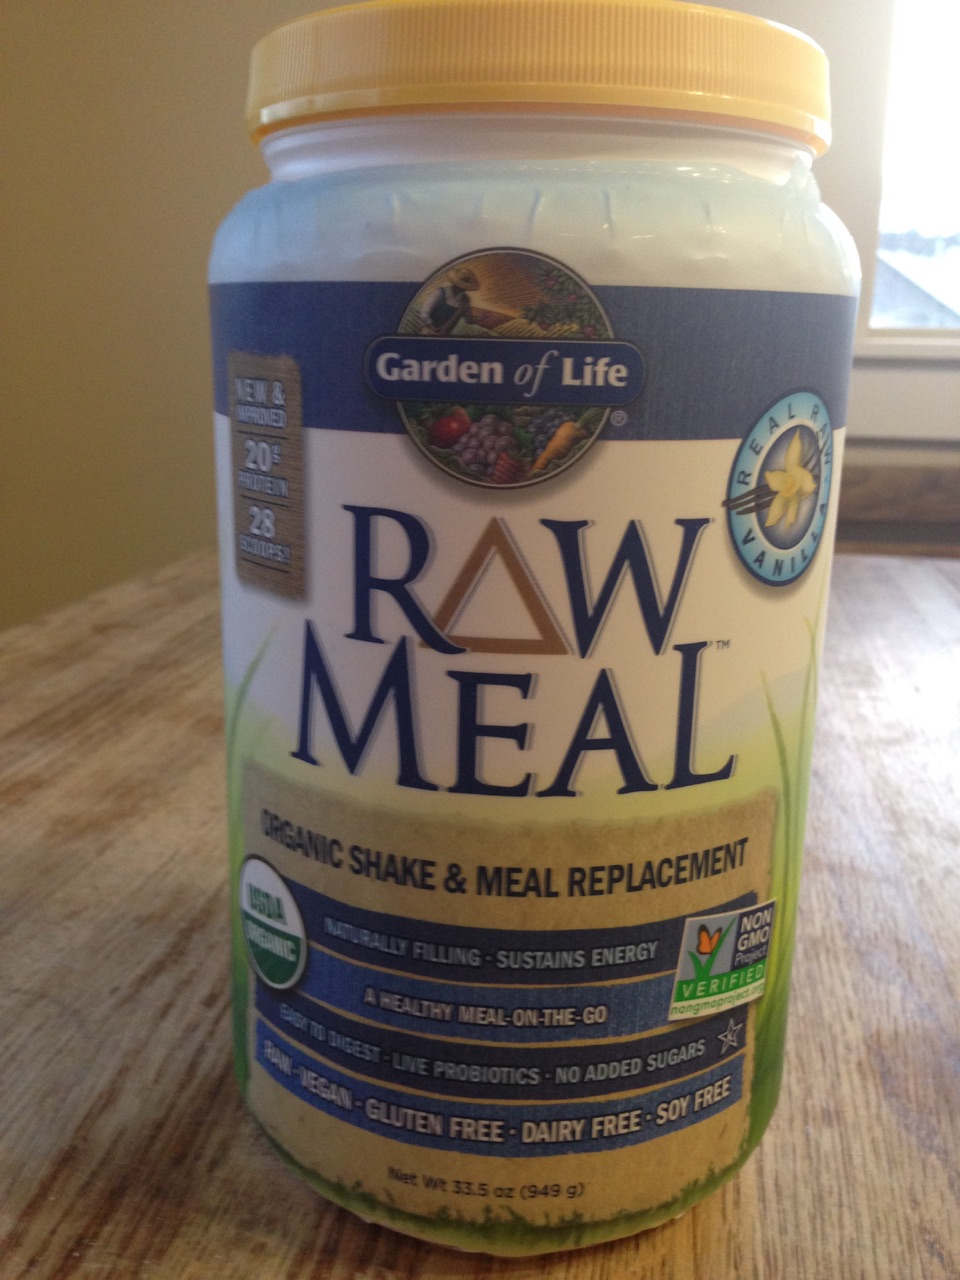 Garden of Life RAW Meal Organic Shake & Meal Product